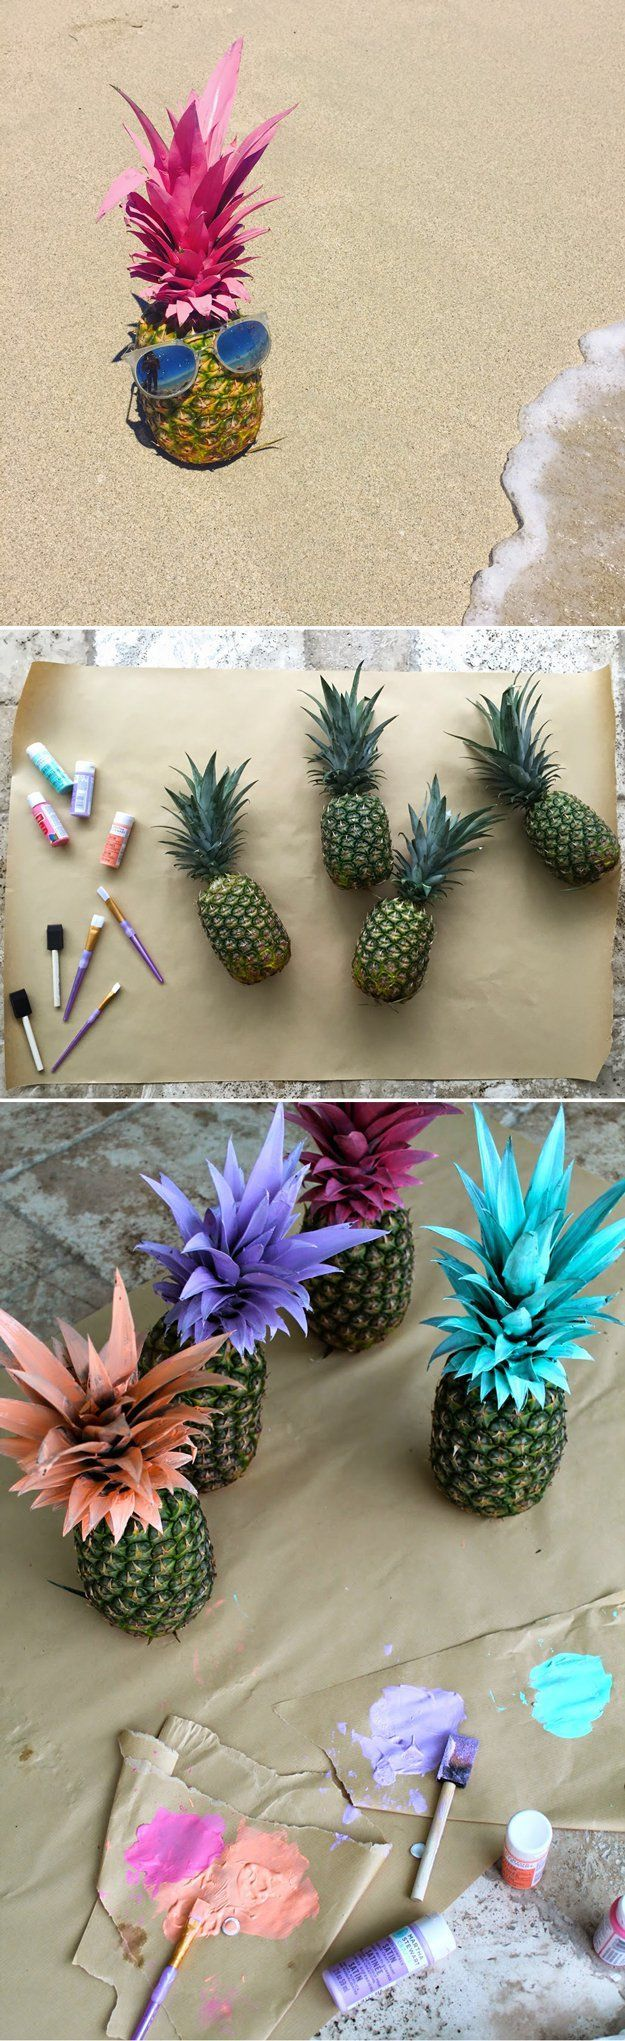 Graduation table decorations homemade - Best 25 Graduation Table Decorations Ideas On Pinterest Grad Party Centerpieces Grad Party Decorations And Graduation Decorations